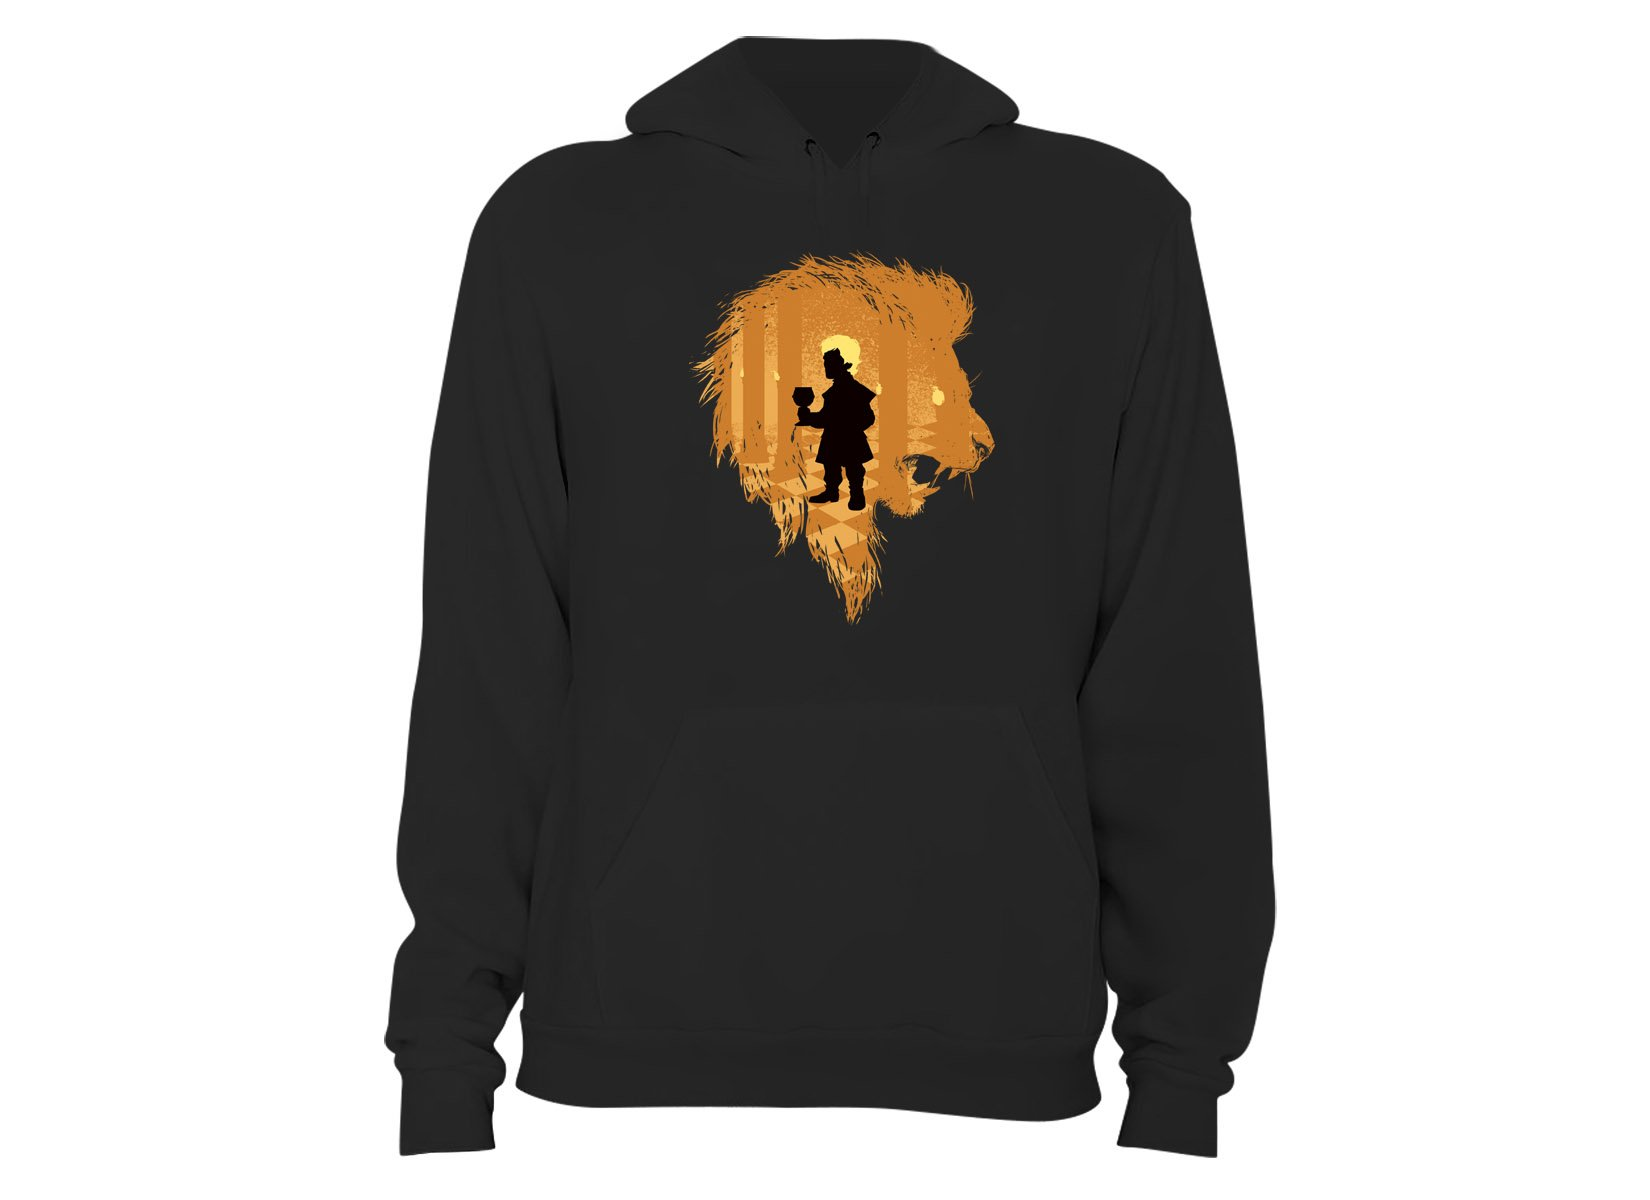 The Lion on Hoodie